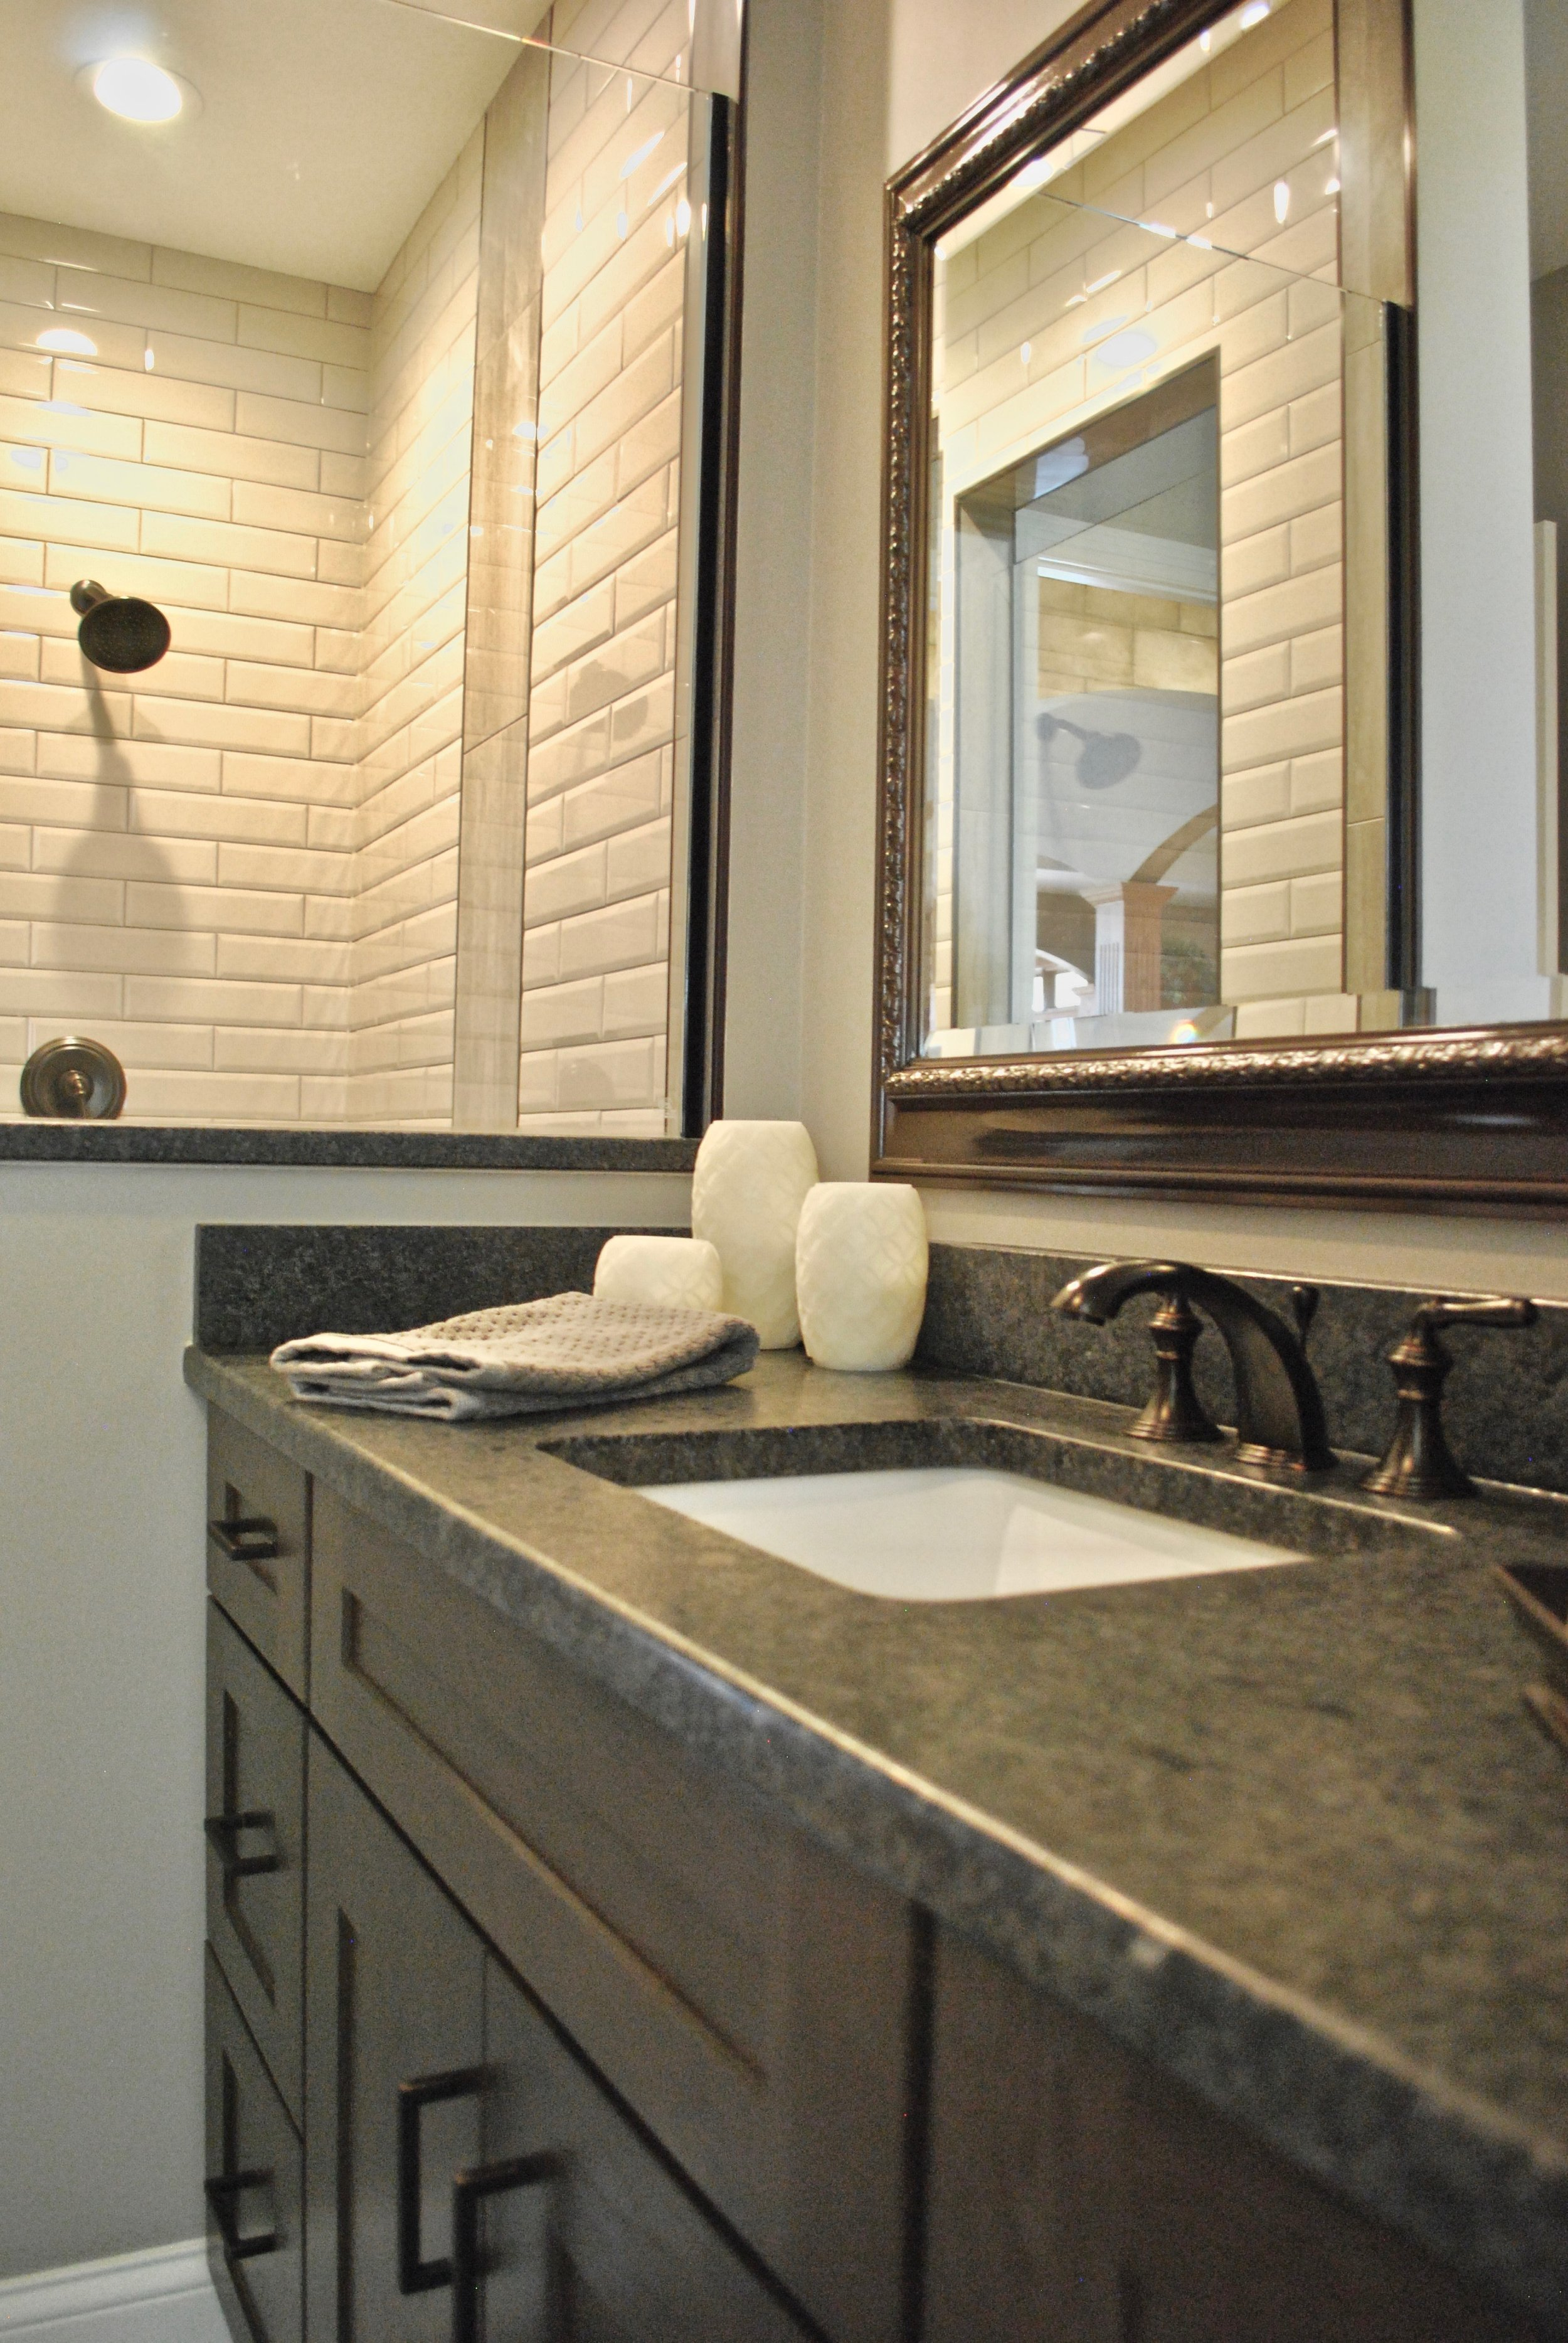 Custom bathroom remodel in st. charles il. Home Updating & renovations. Naperville IL.